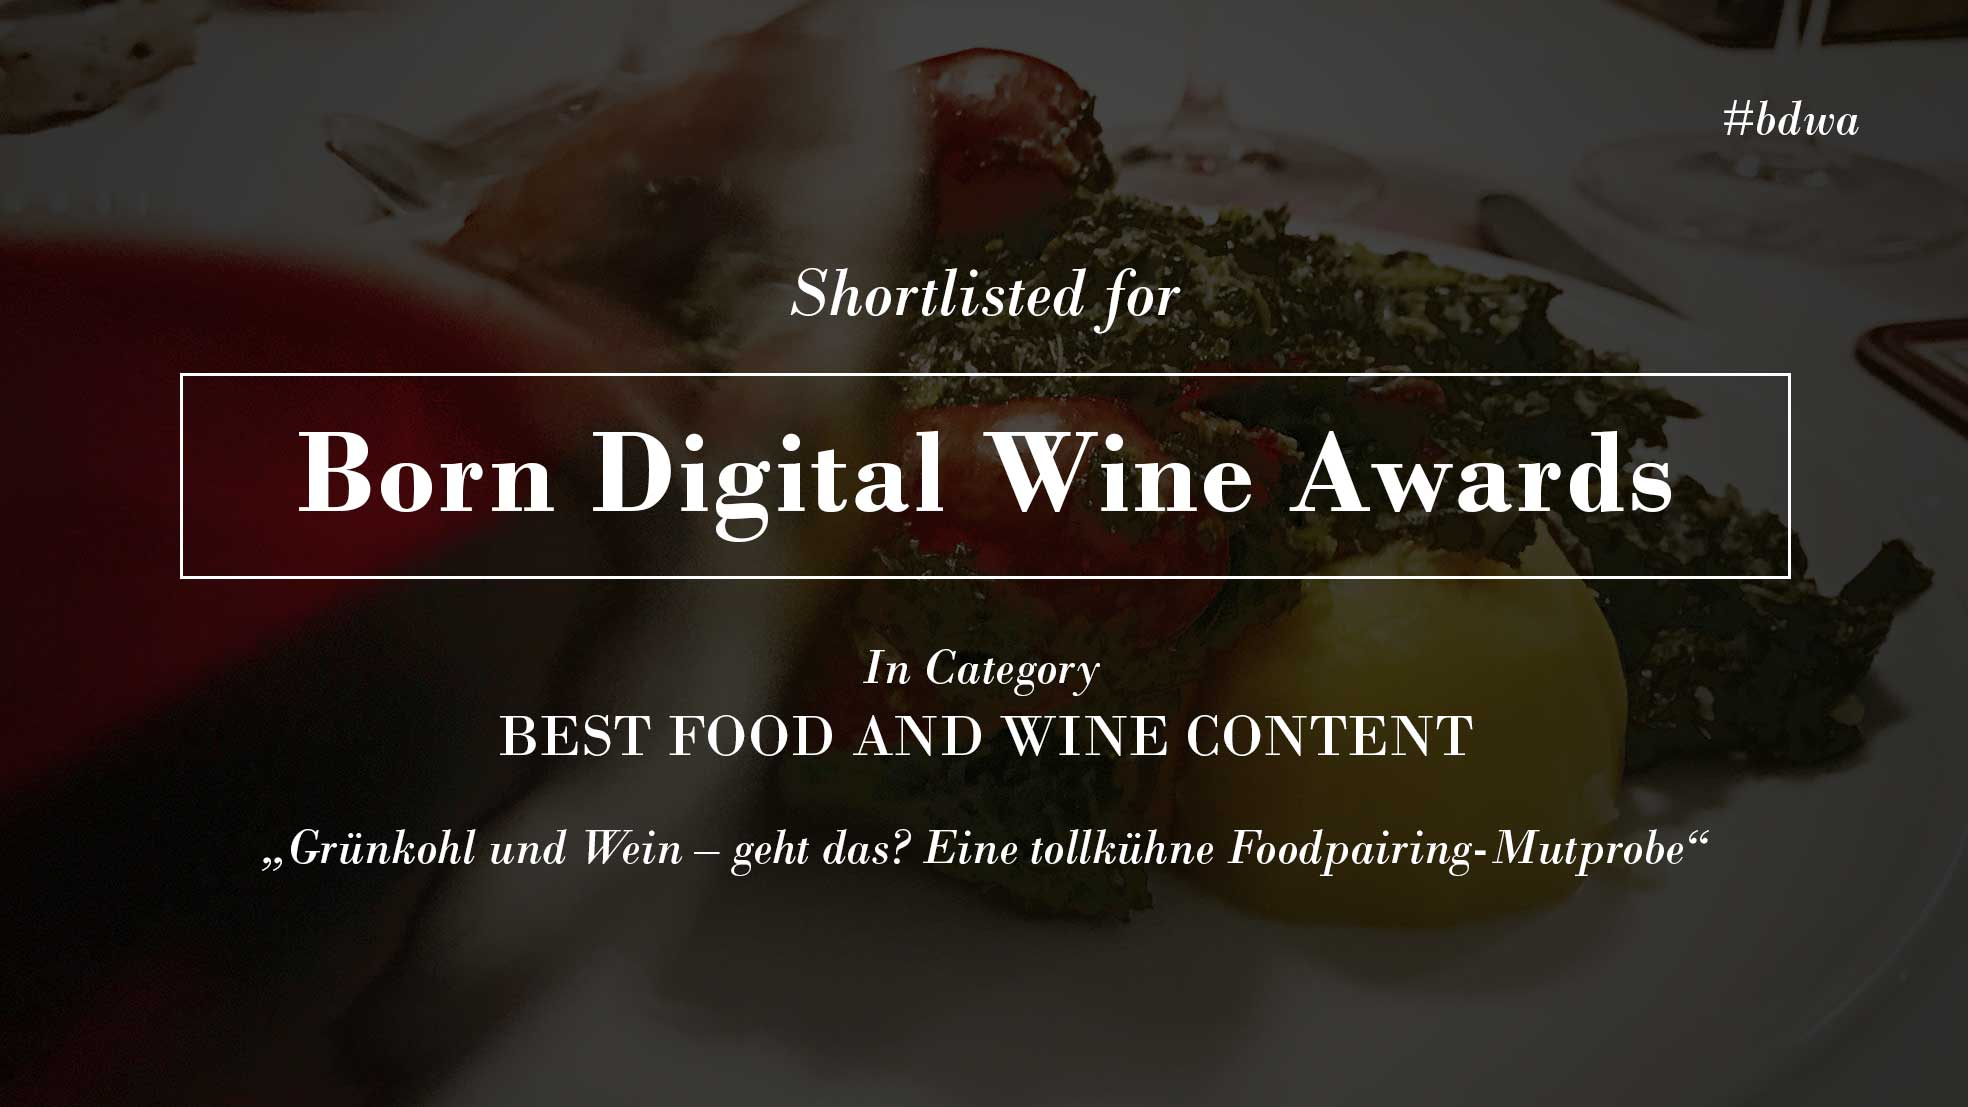 Shortlisted for wine award